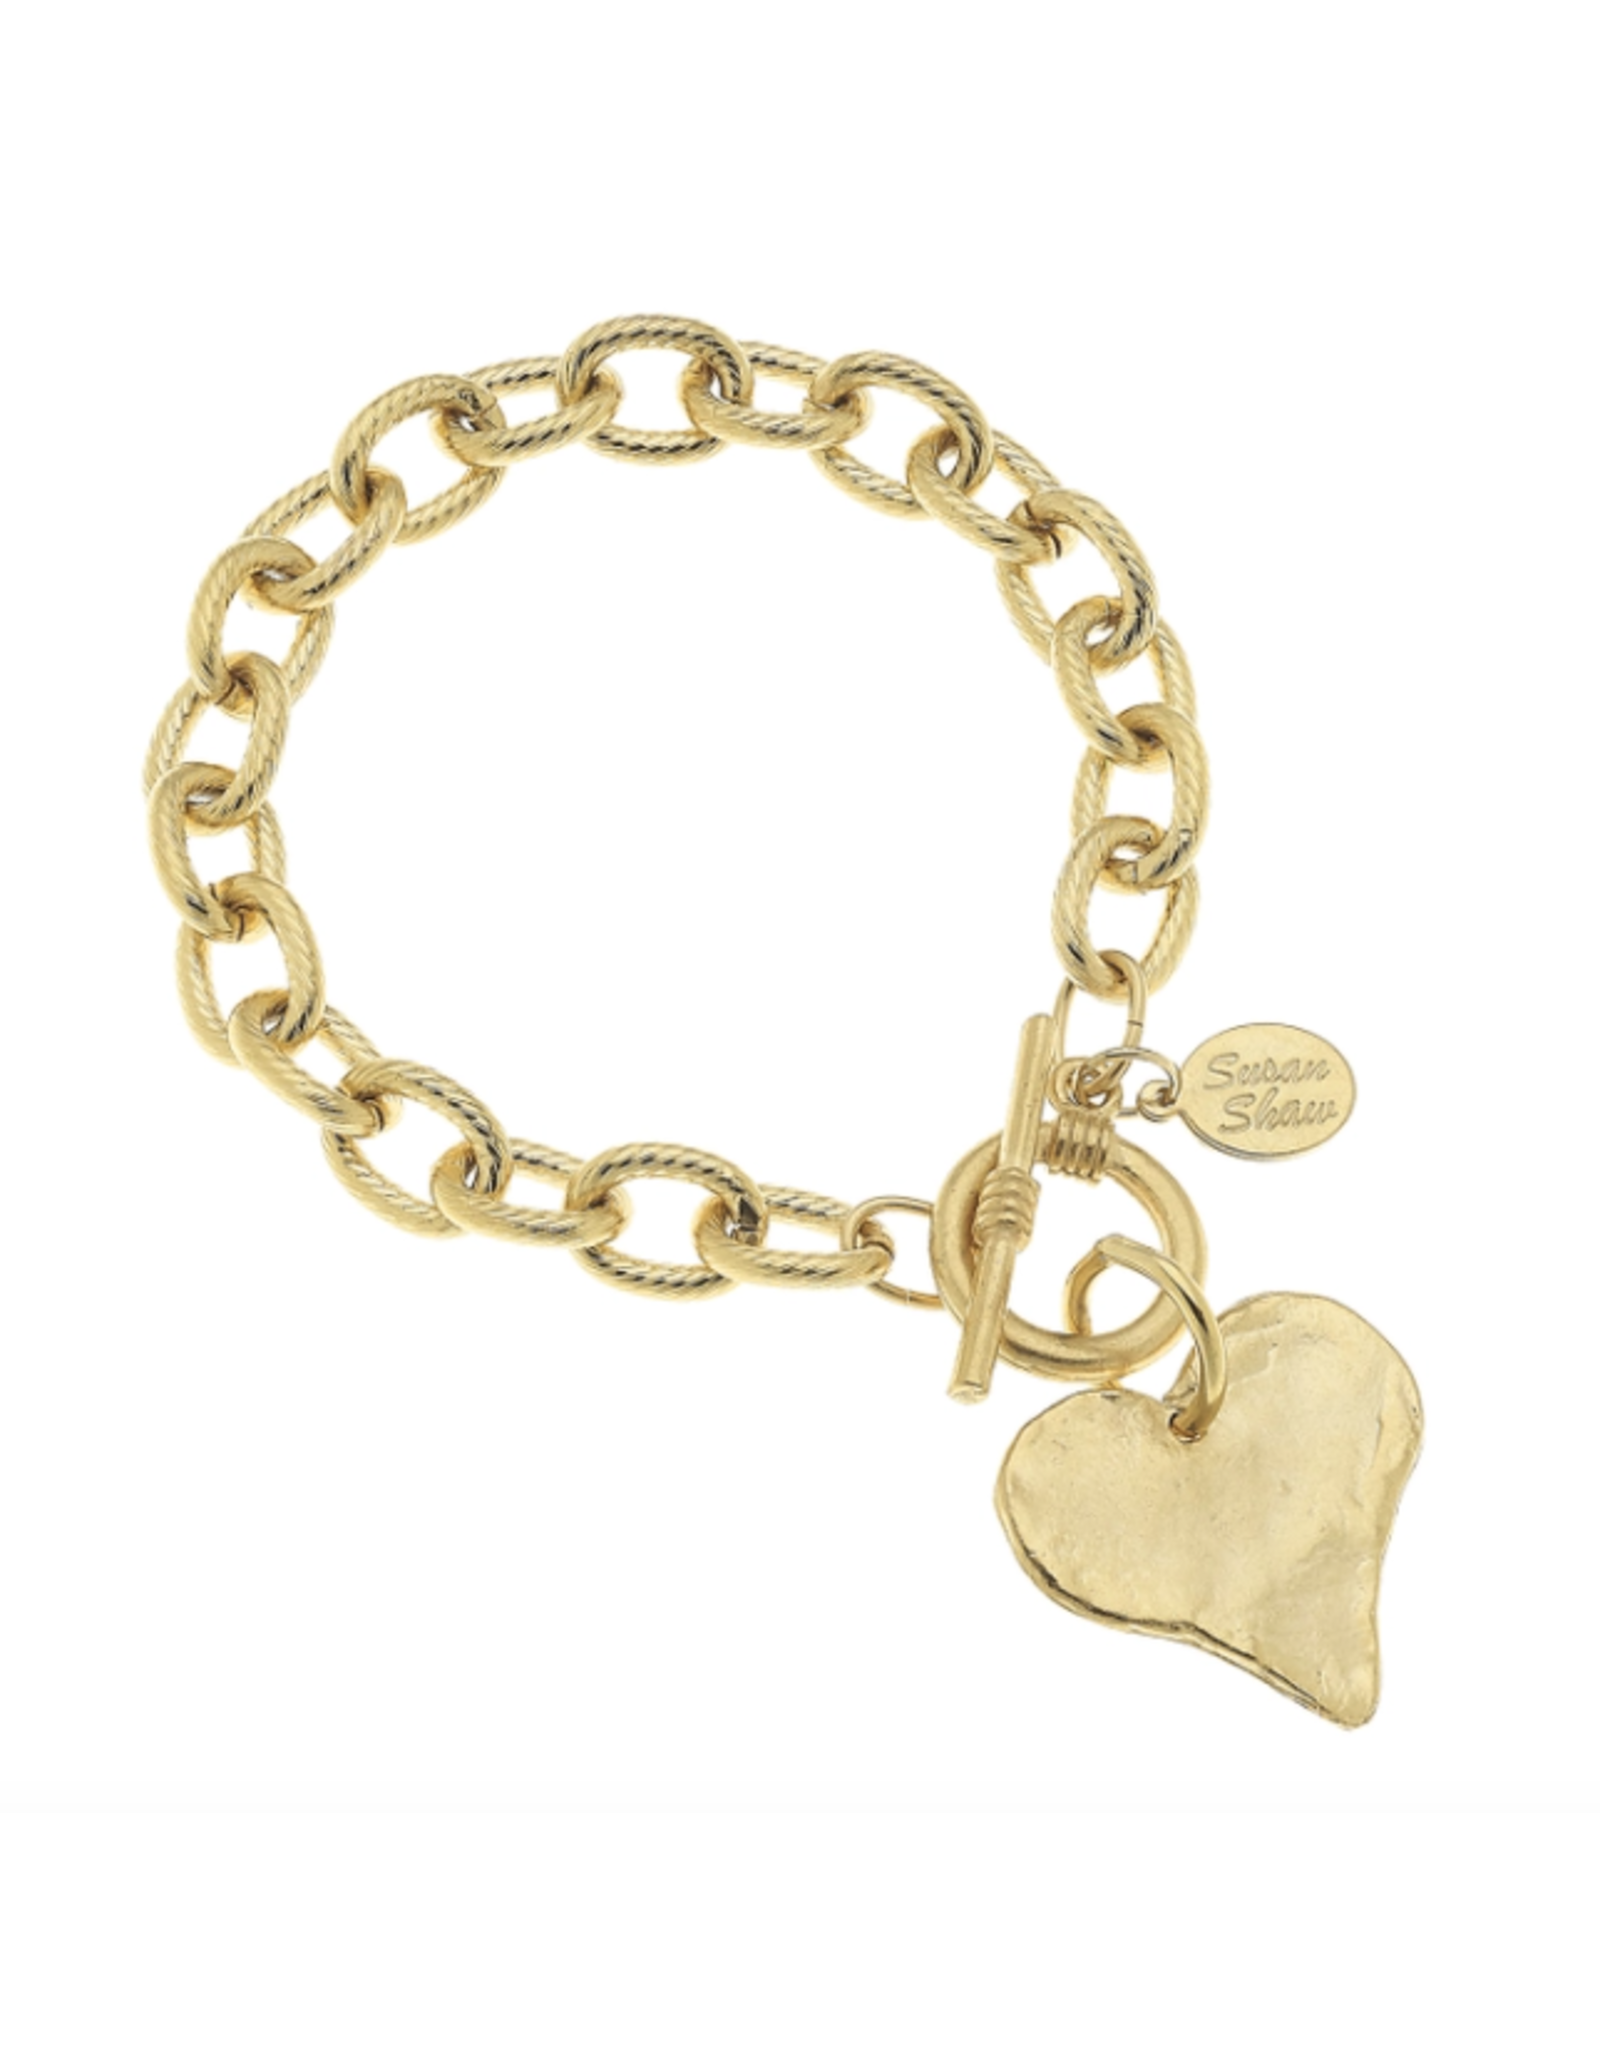 Susan Shaw Gold Bracelet with Heart Charm by Susan Shaw